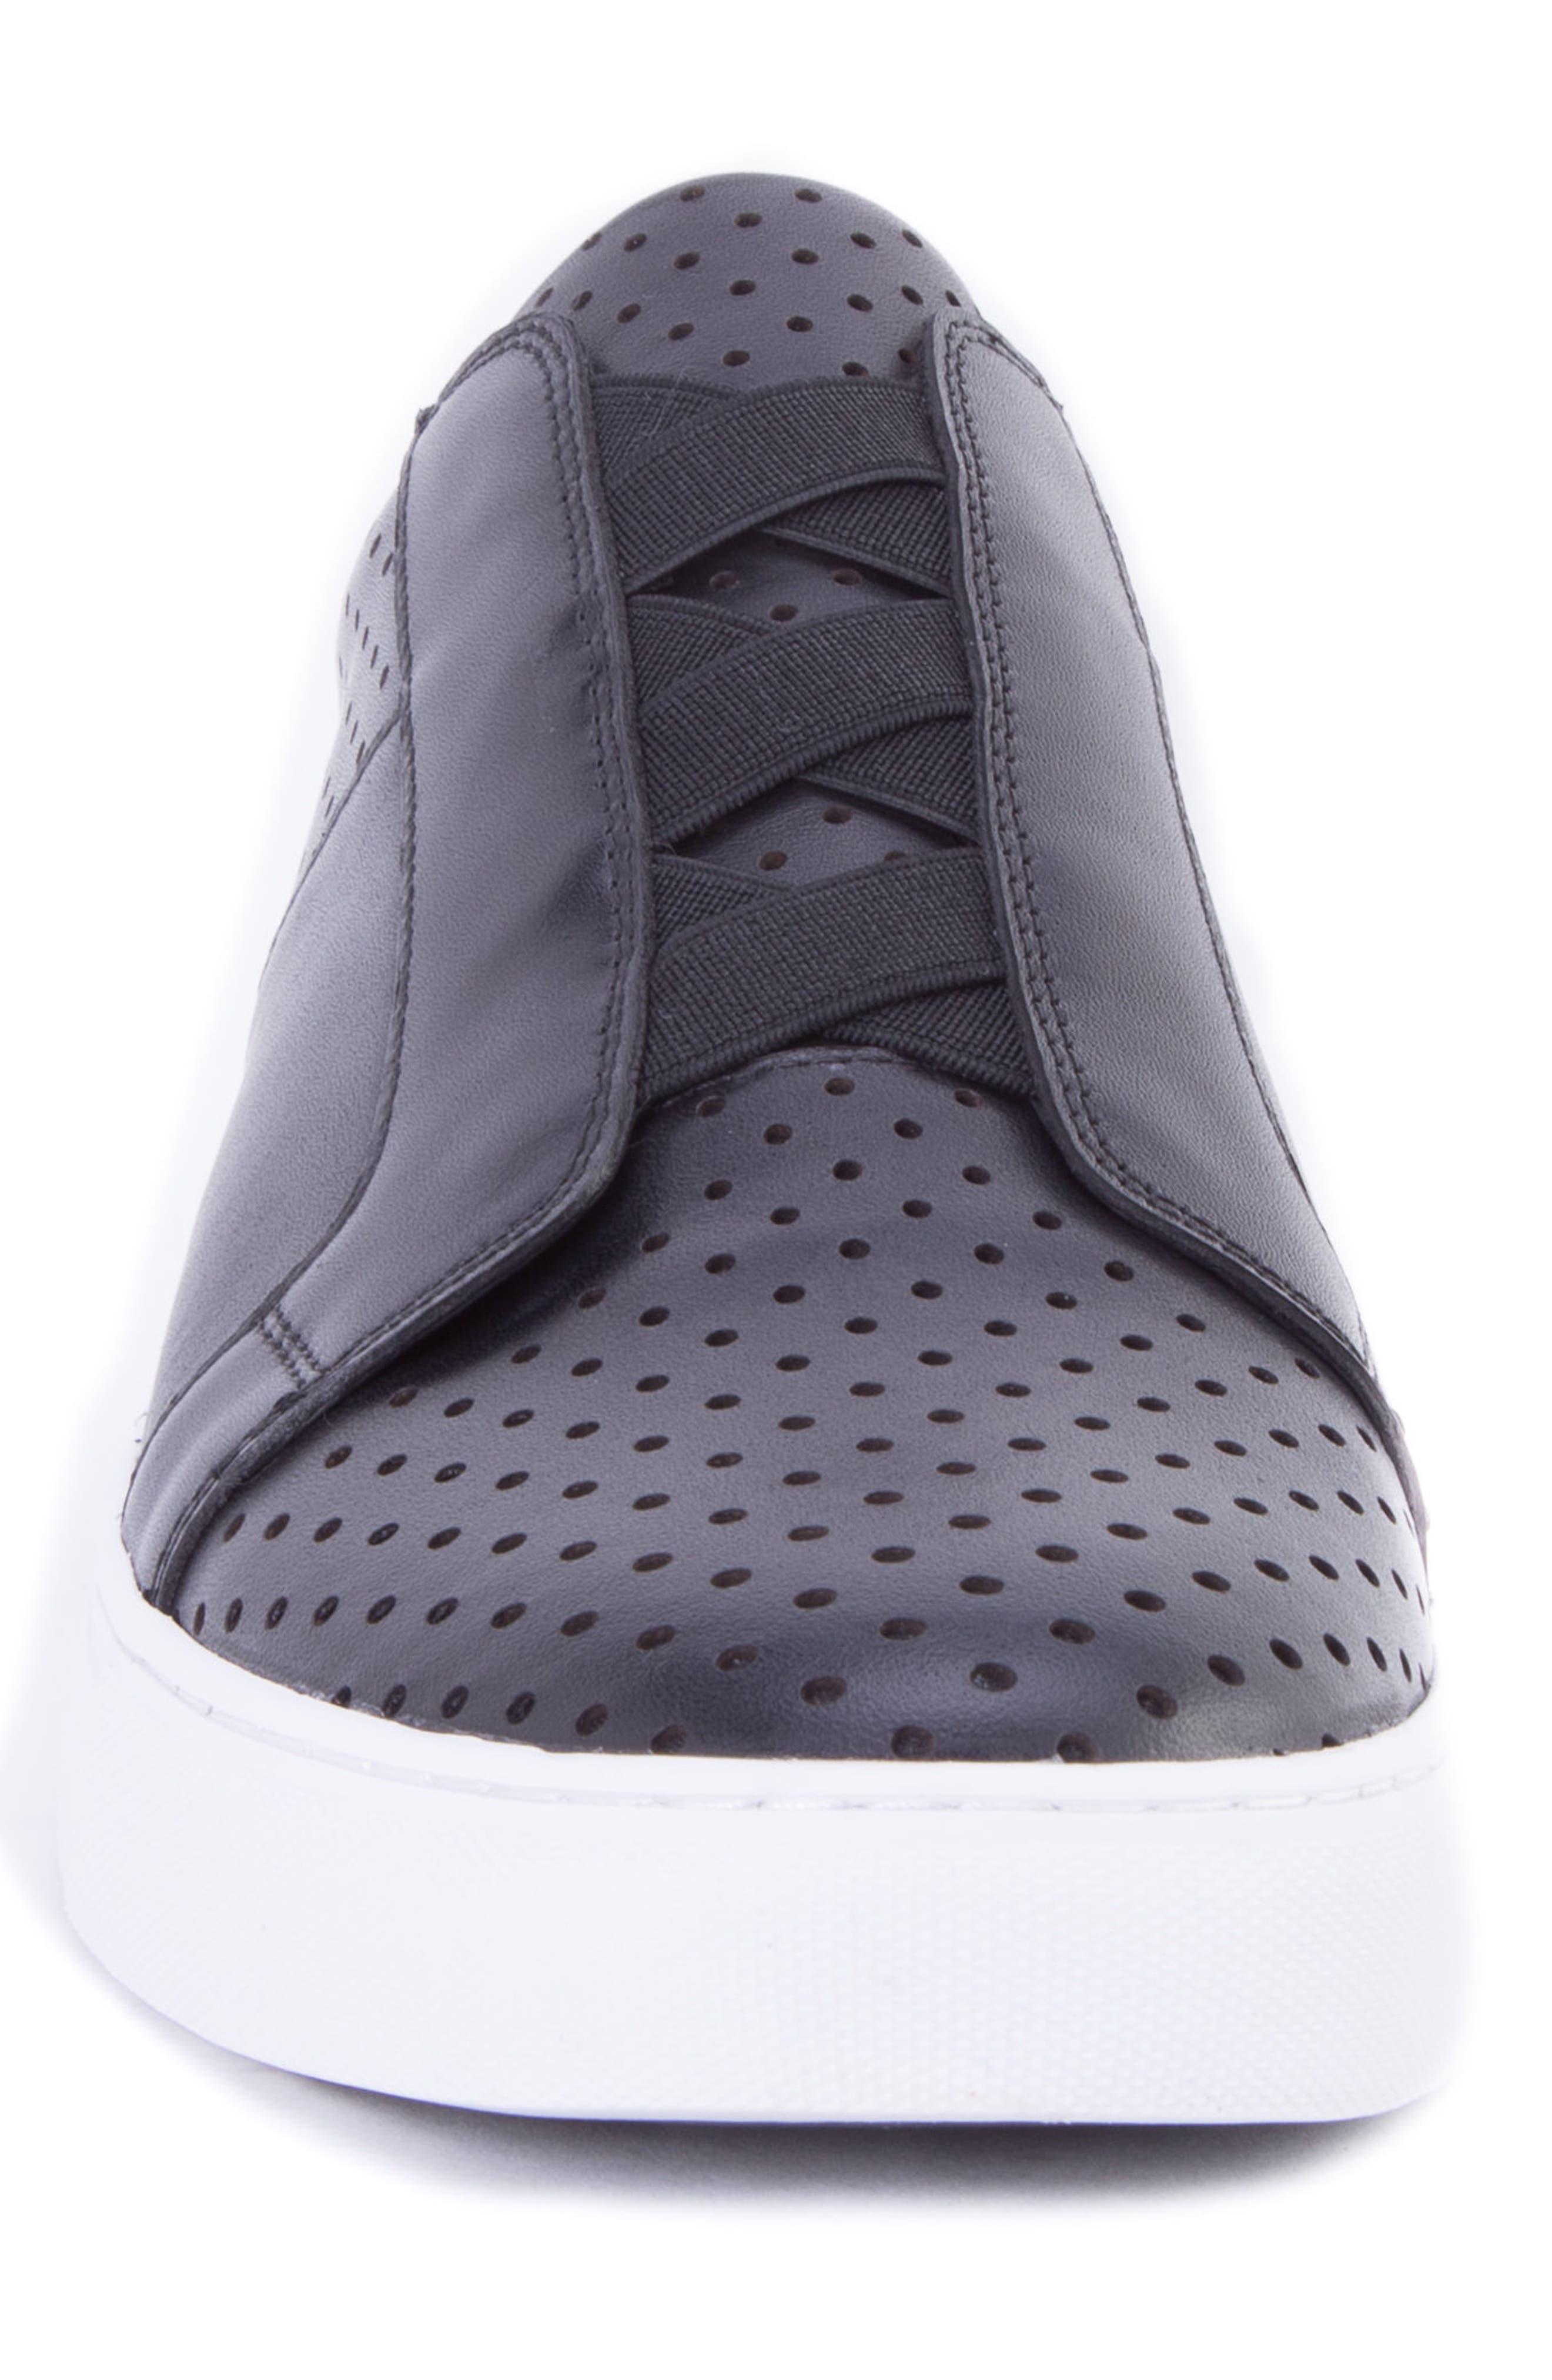 Rowley Perforated Laceless Sneaker,                             Alternate thumbnail 4, color,                             BLACK LEATHER